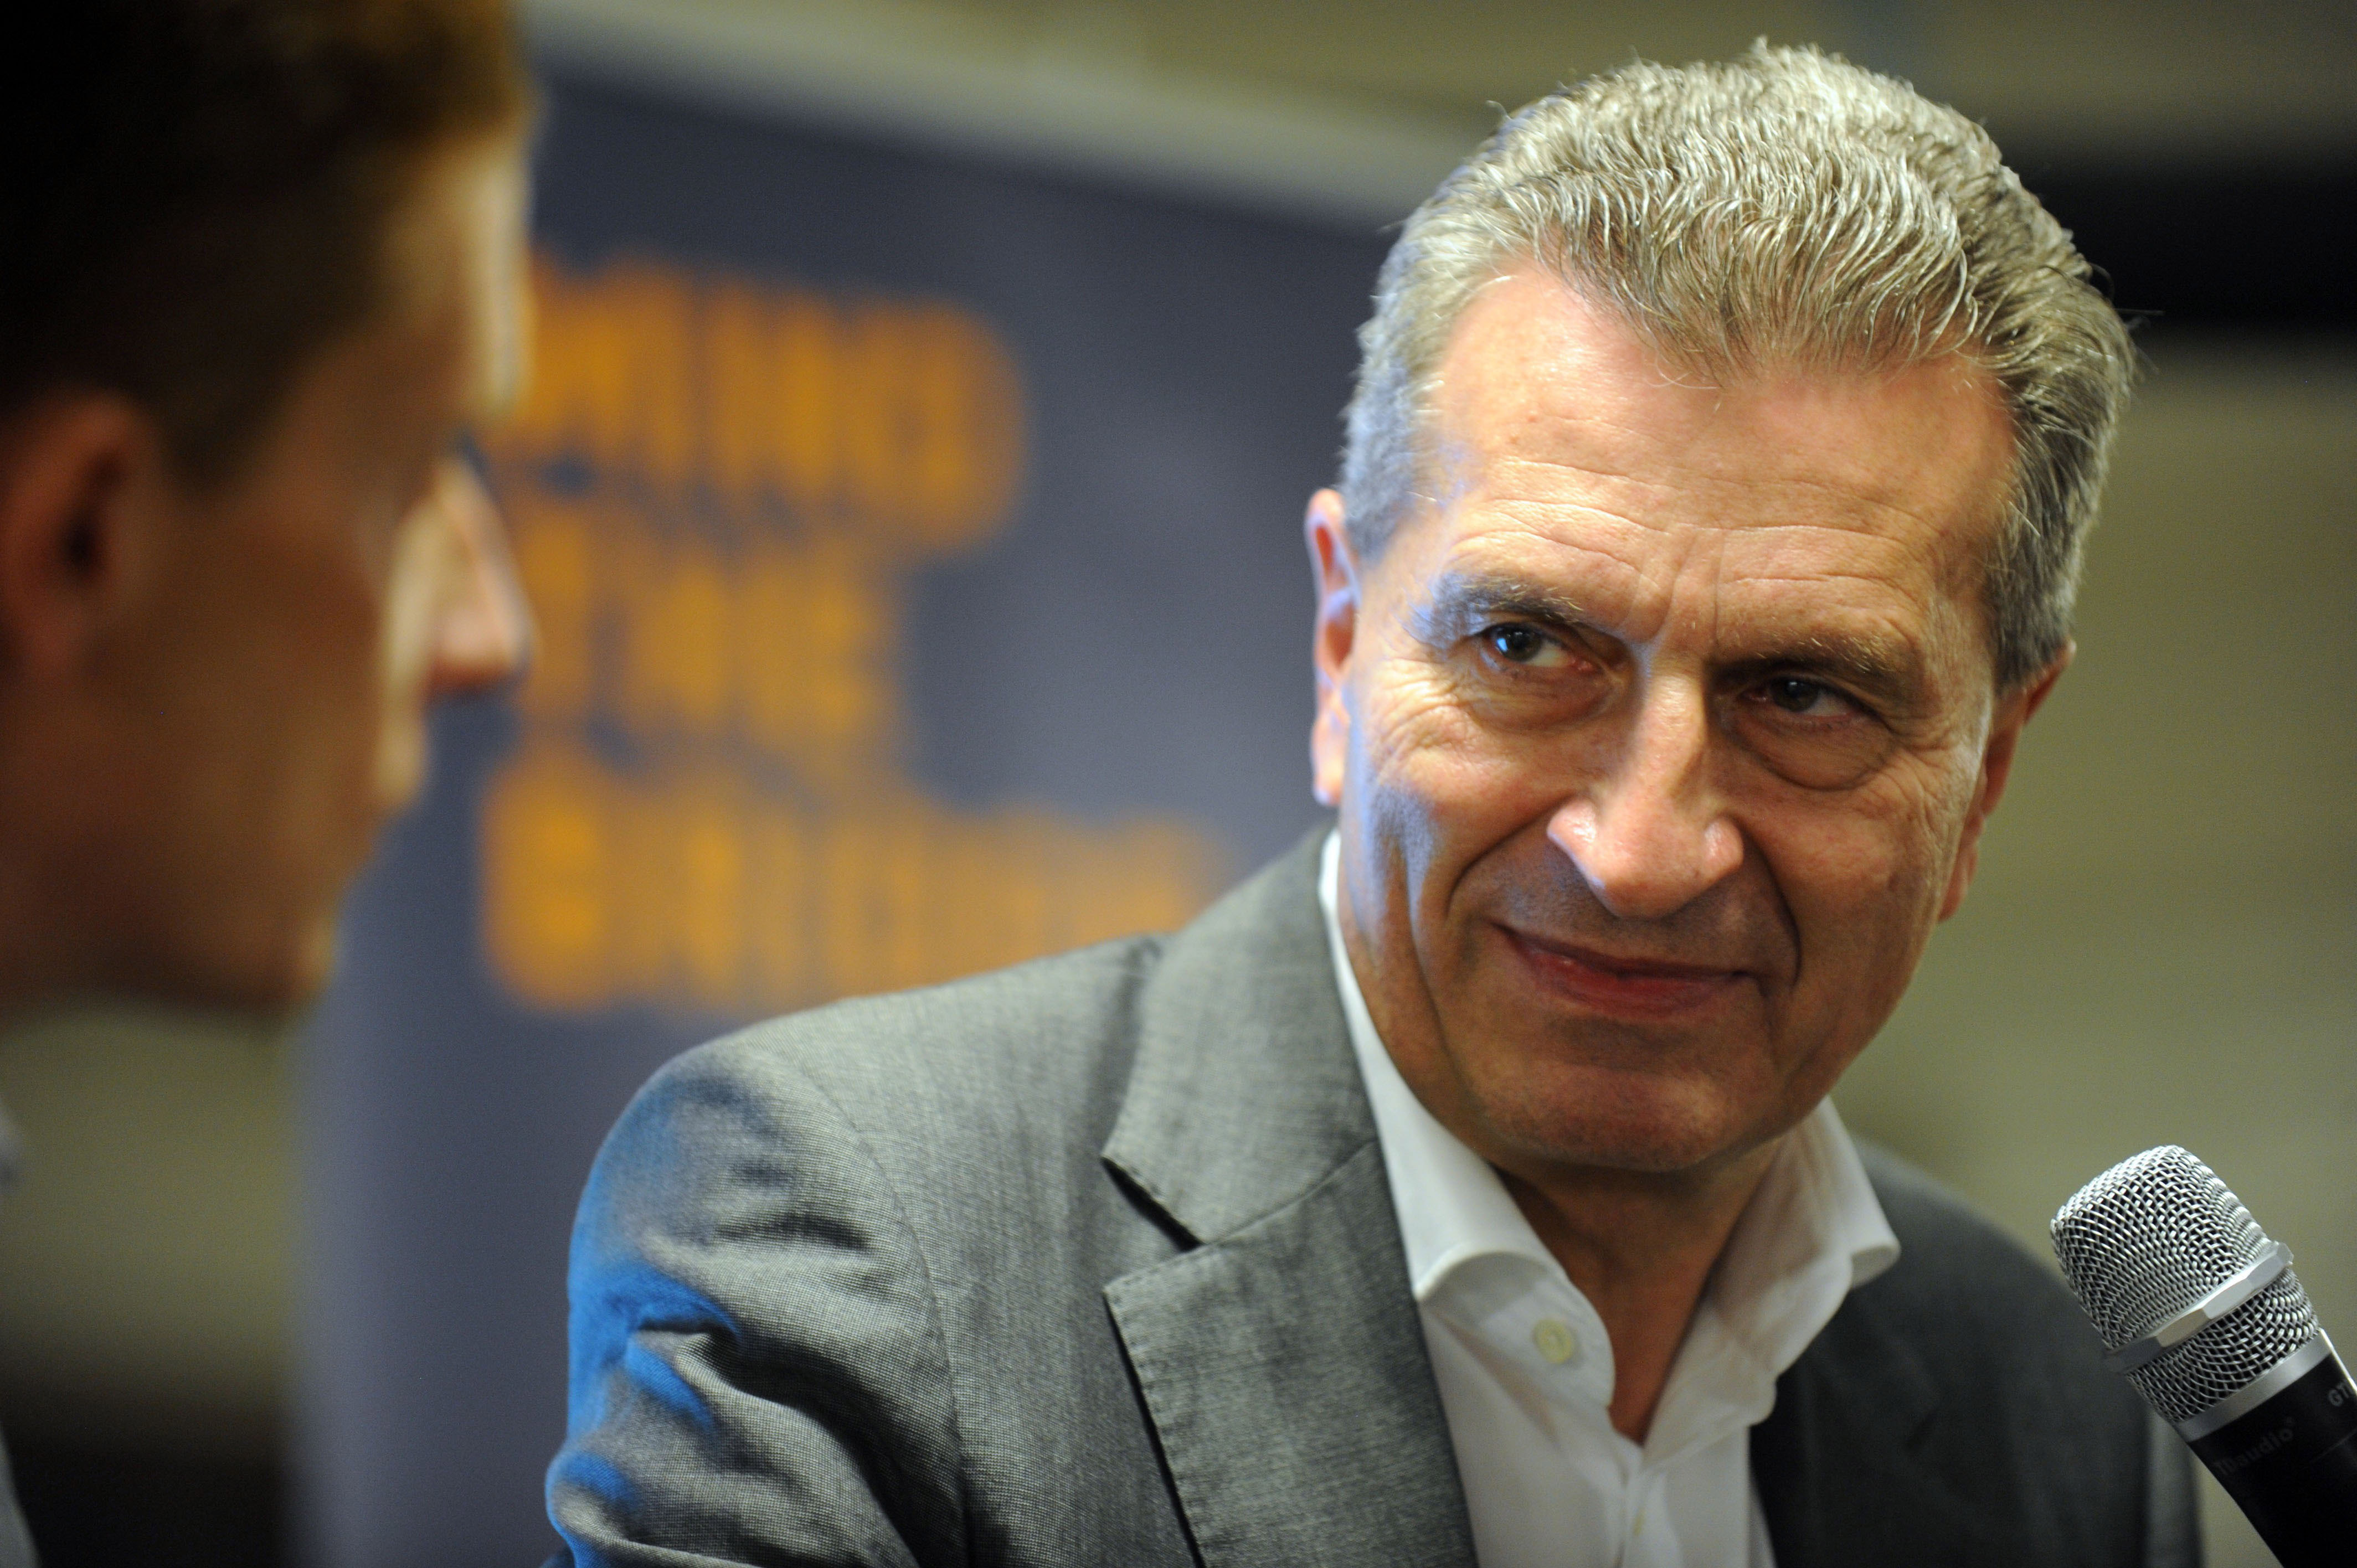 Trump, Digital Commissioner Günther Oettinger during a visit to Silicon Valley this week